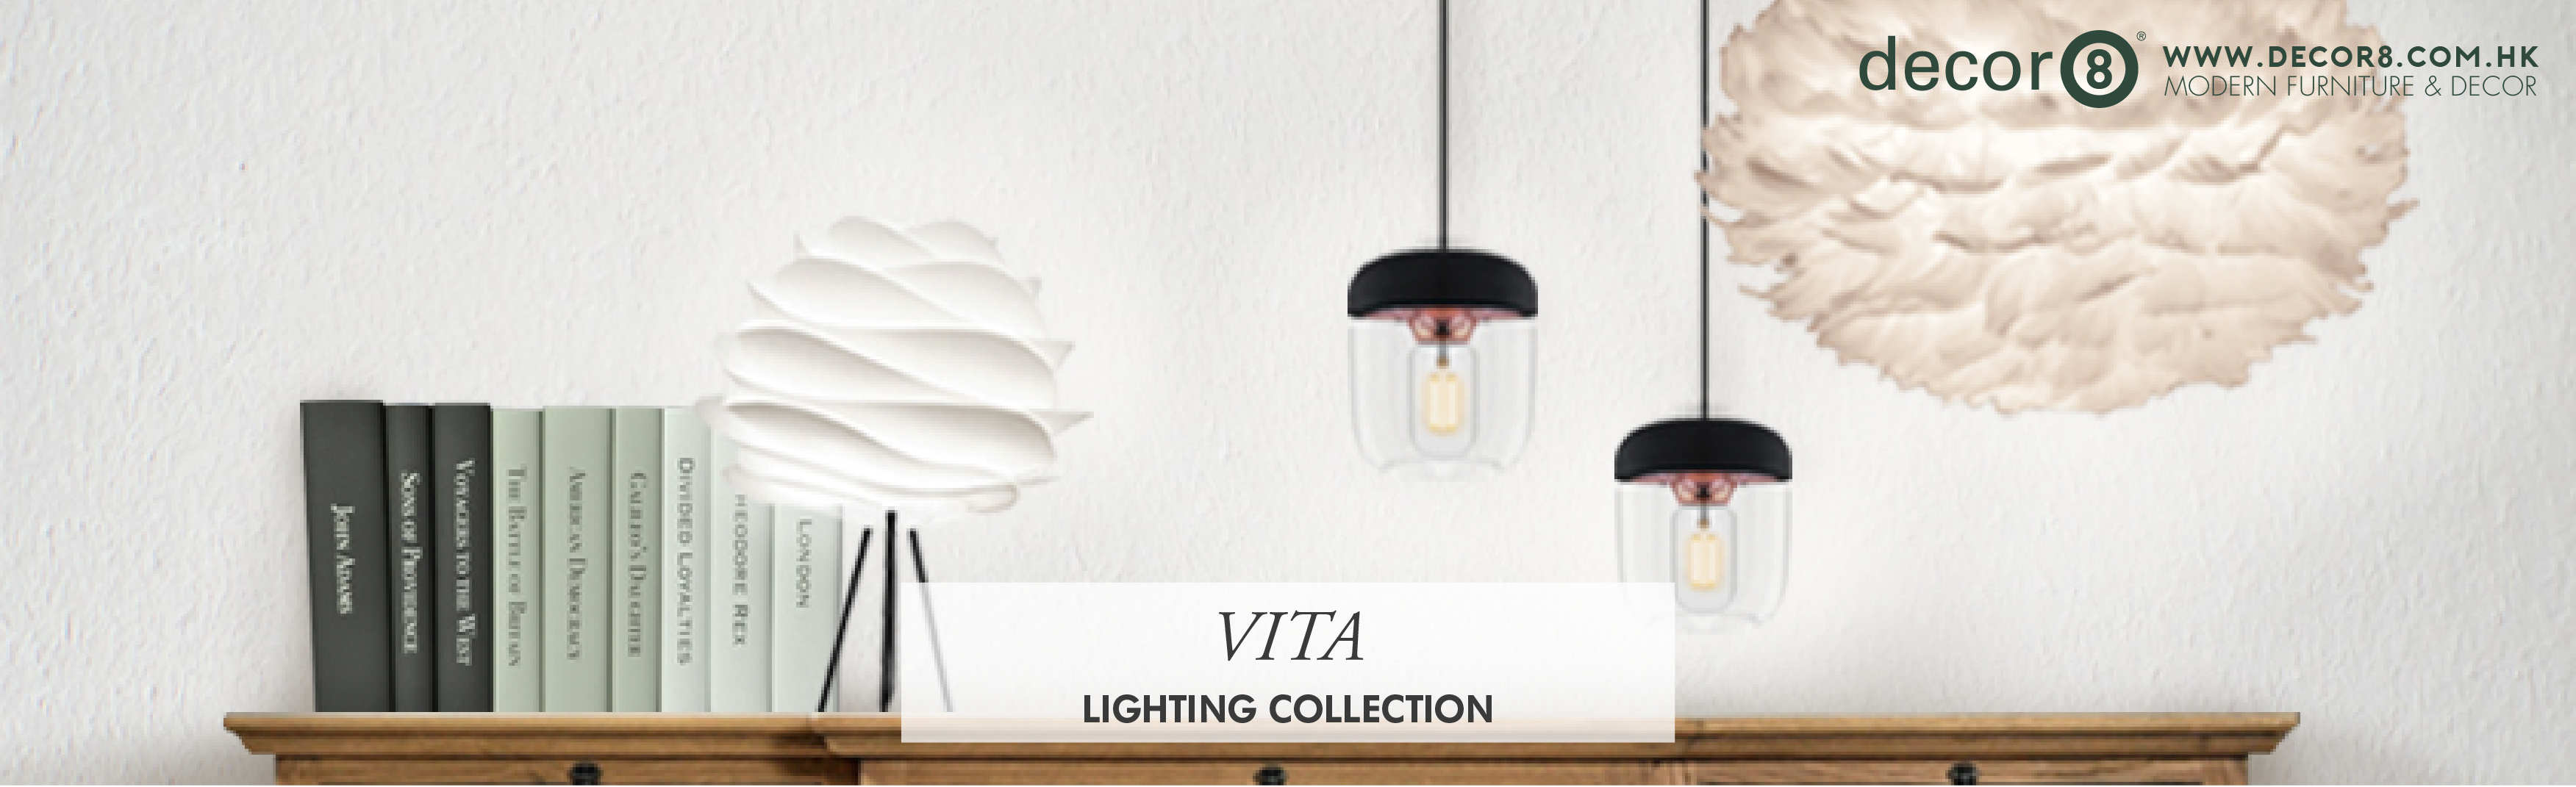 VITA Copenhagen Lighting Collection